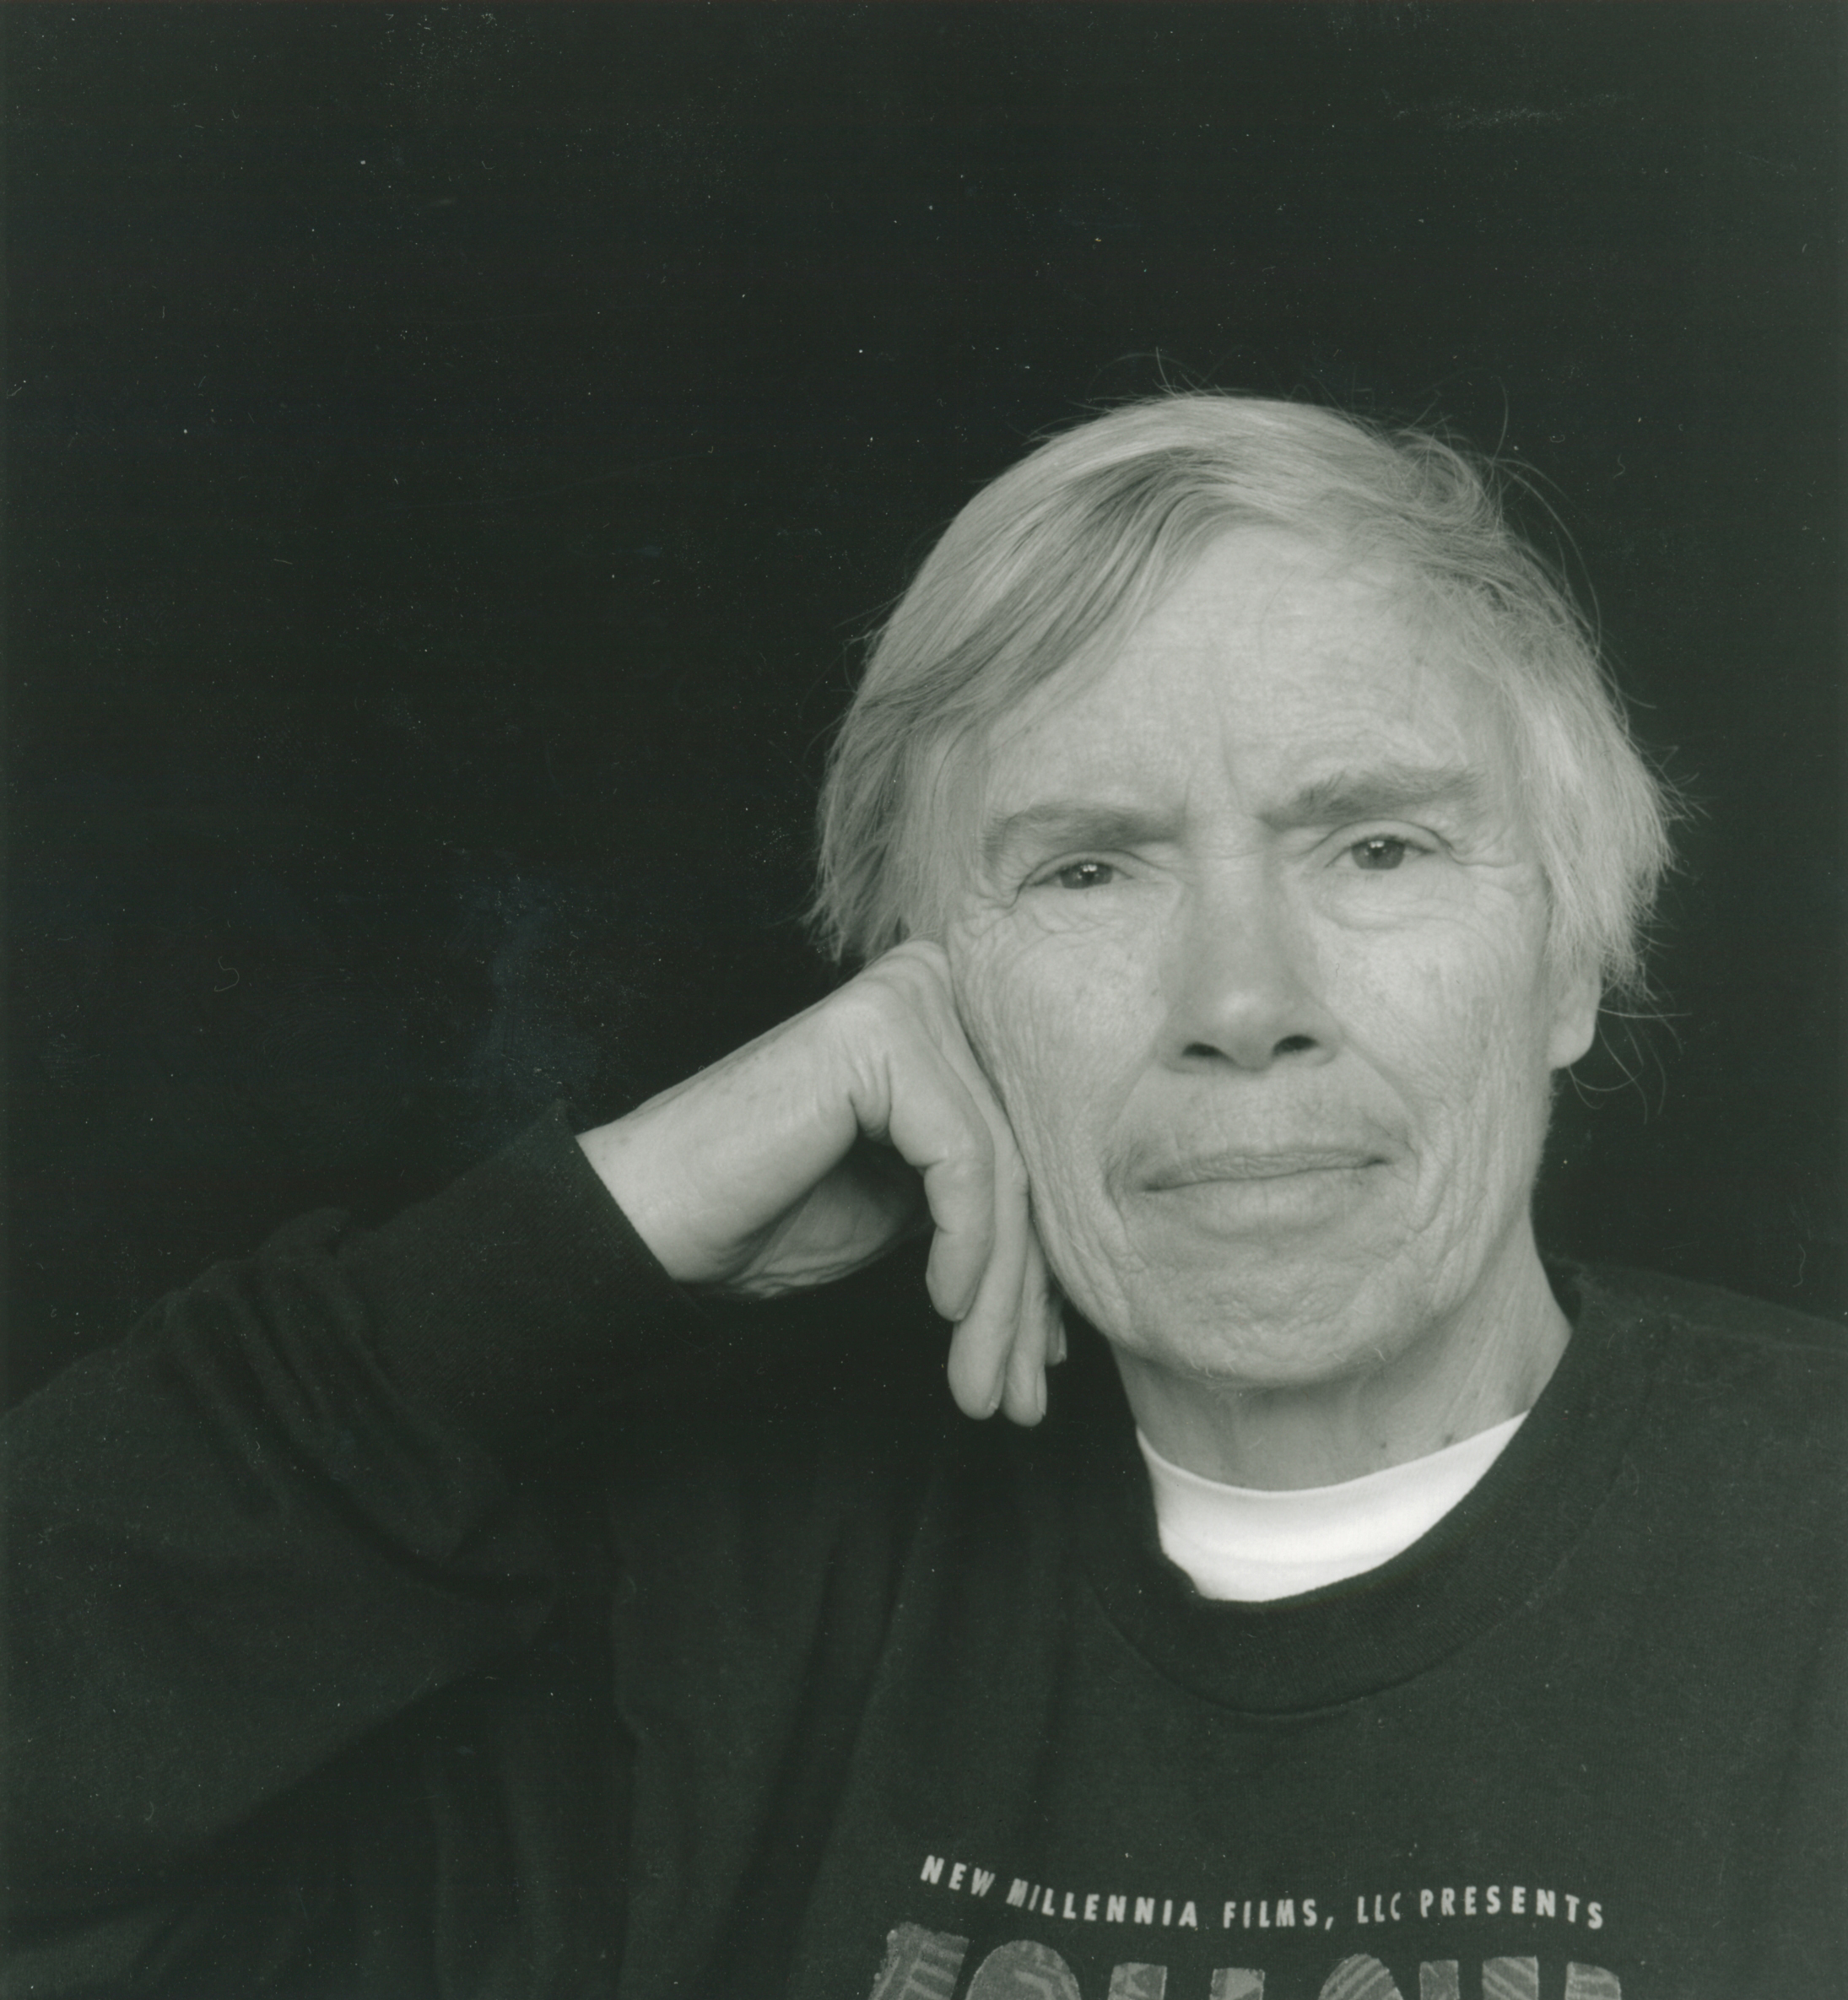 Thumbnail for the post titled: Eighty Five Audible Moments for Pauline Oliveros (2016)